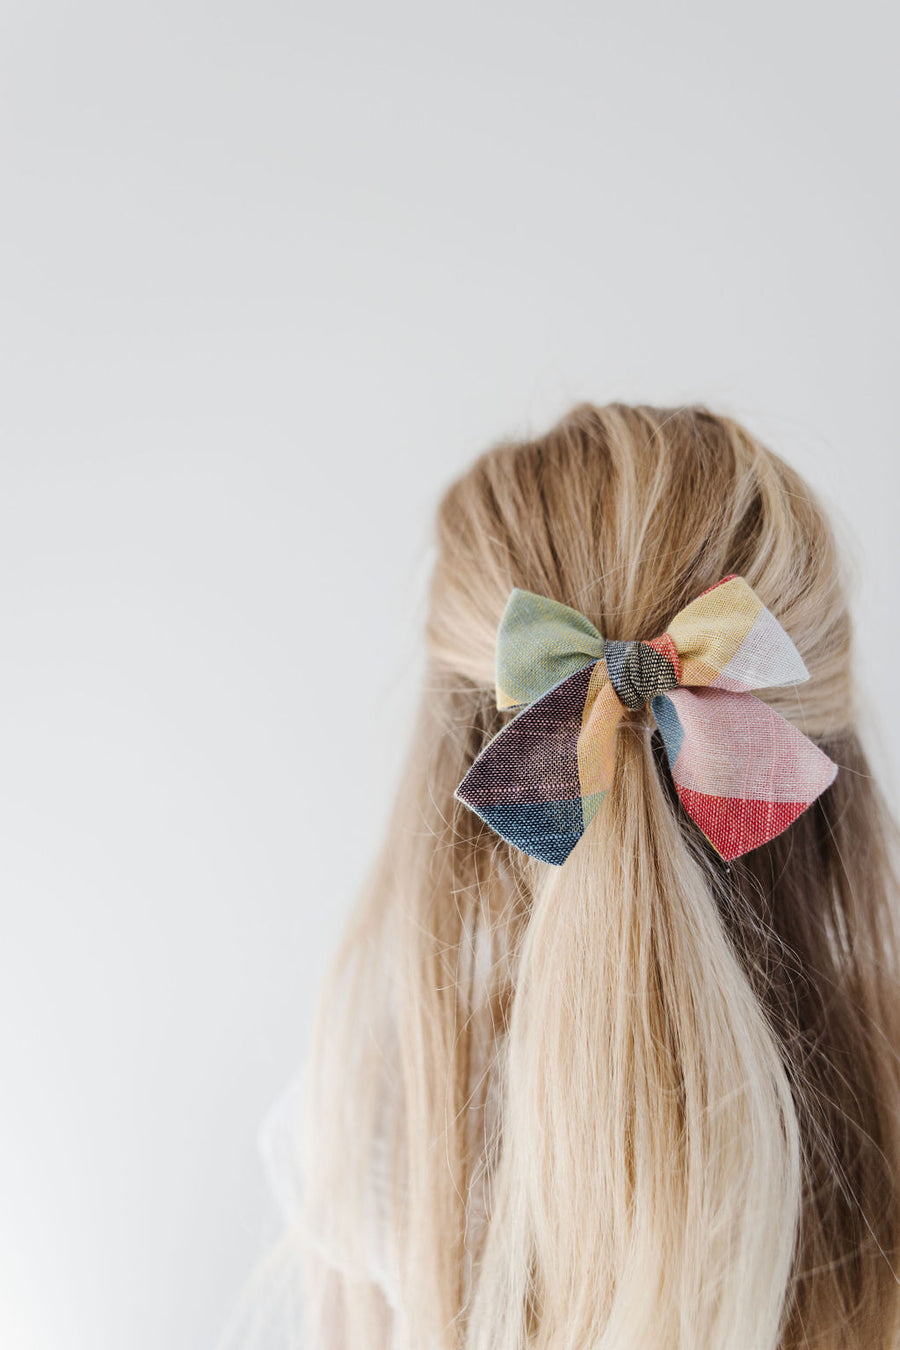 Rubik Cube Plaid Hair Bow for Girls